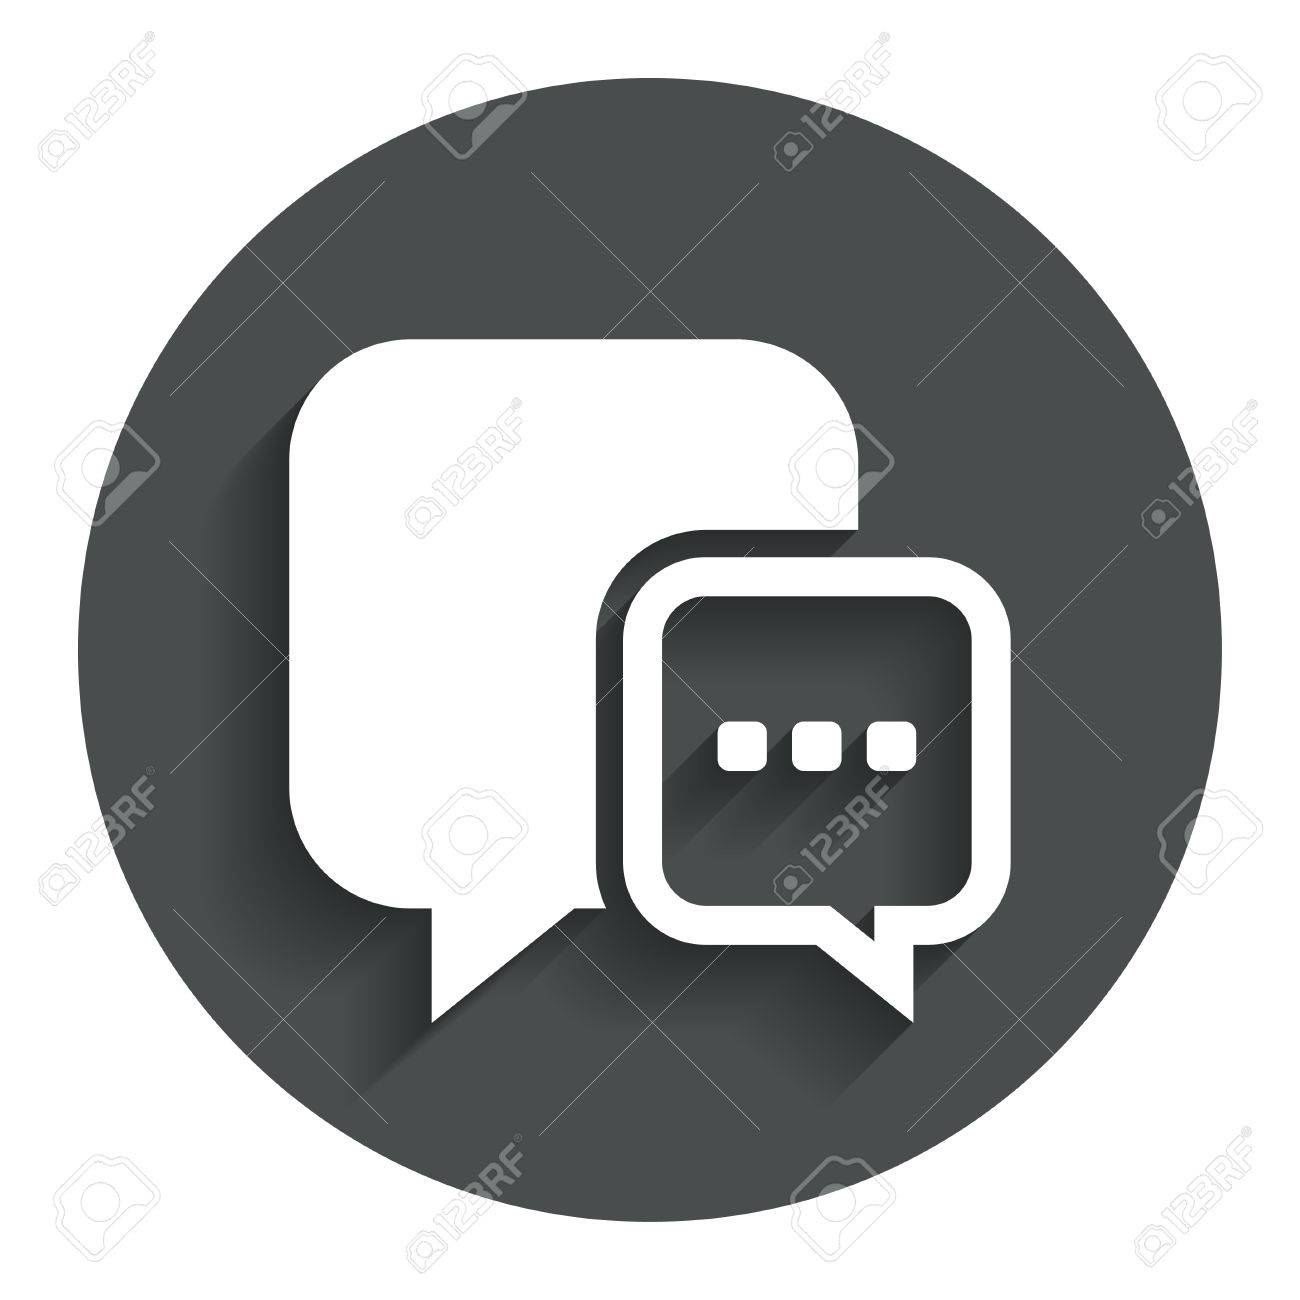 Chat sign icon speech bubble with three dots symbol speech bubble with three dots symbol communication chat bubble gray biocorpaavc